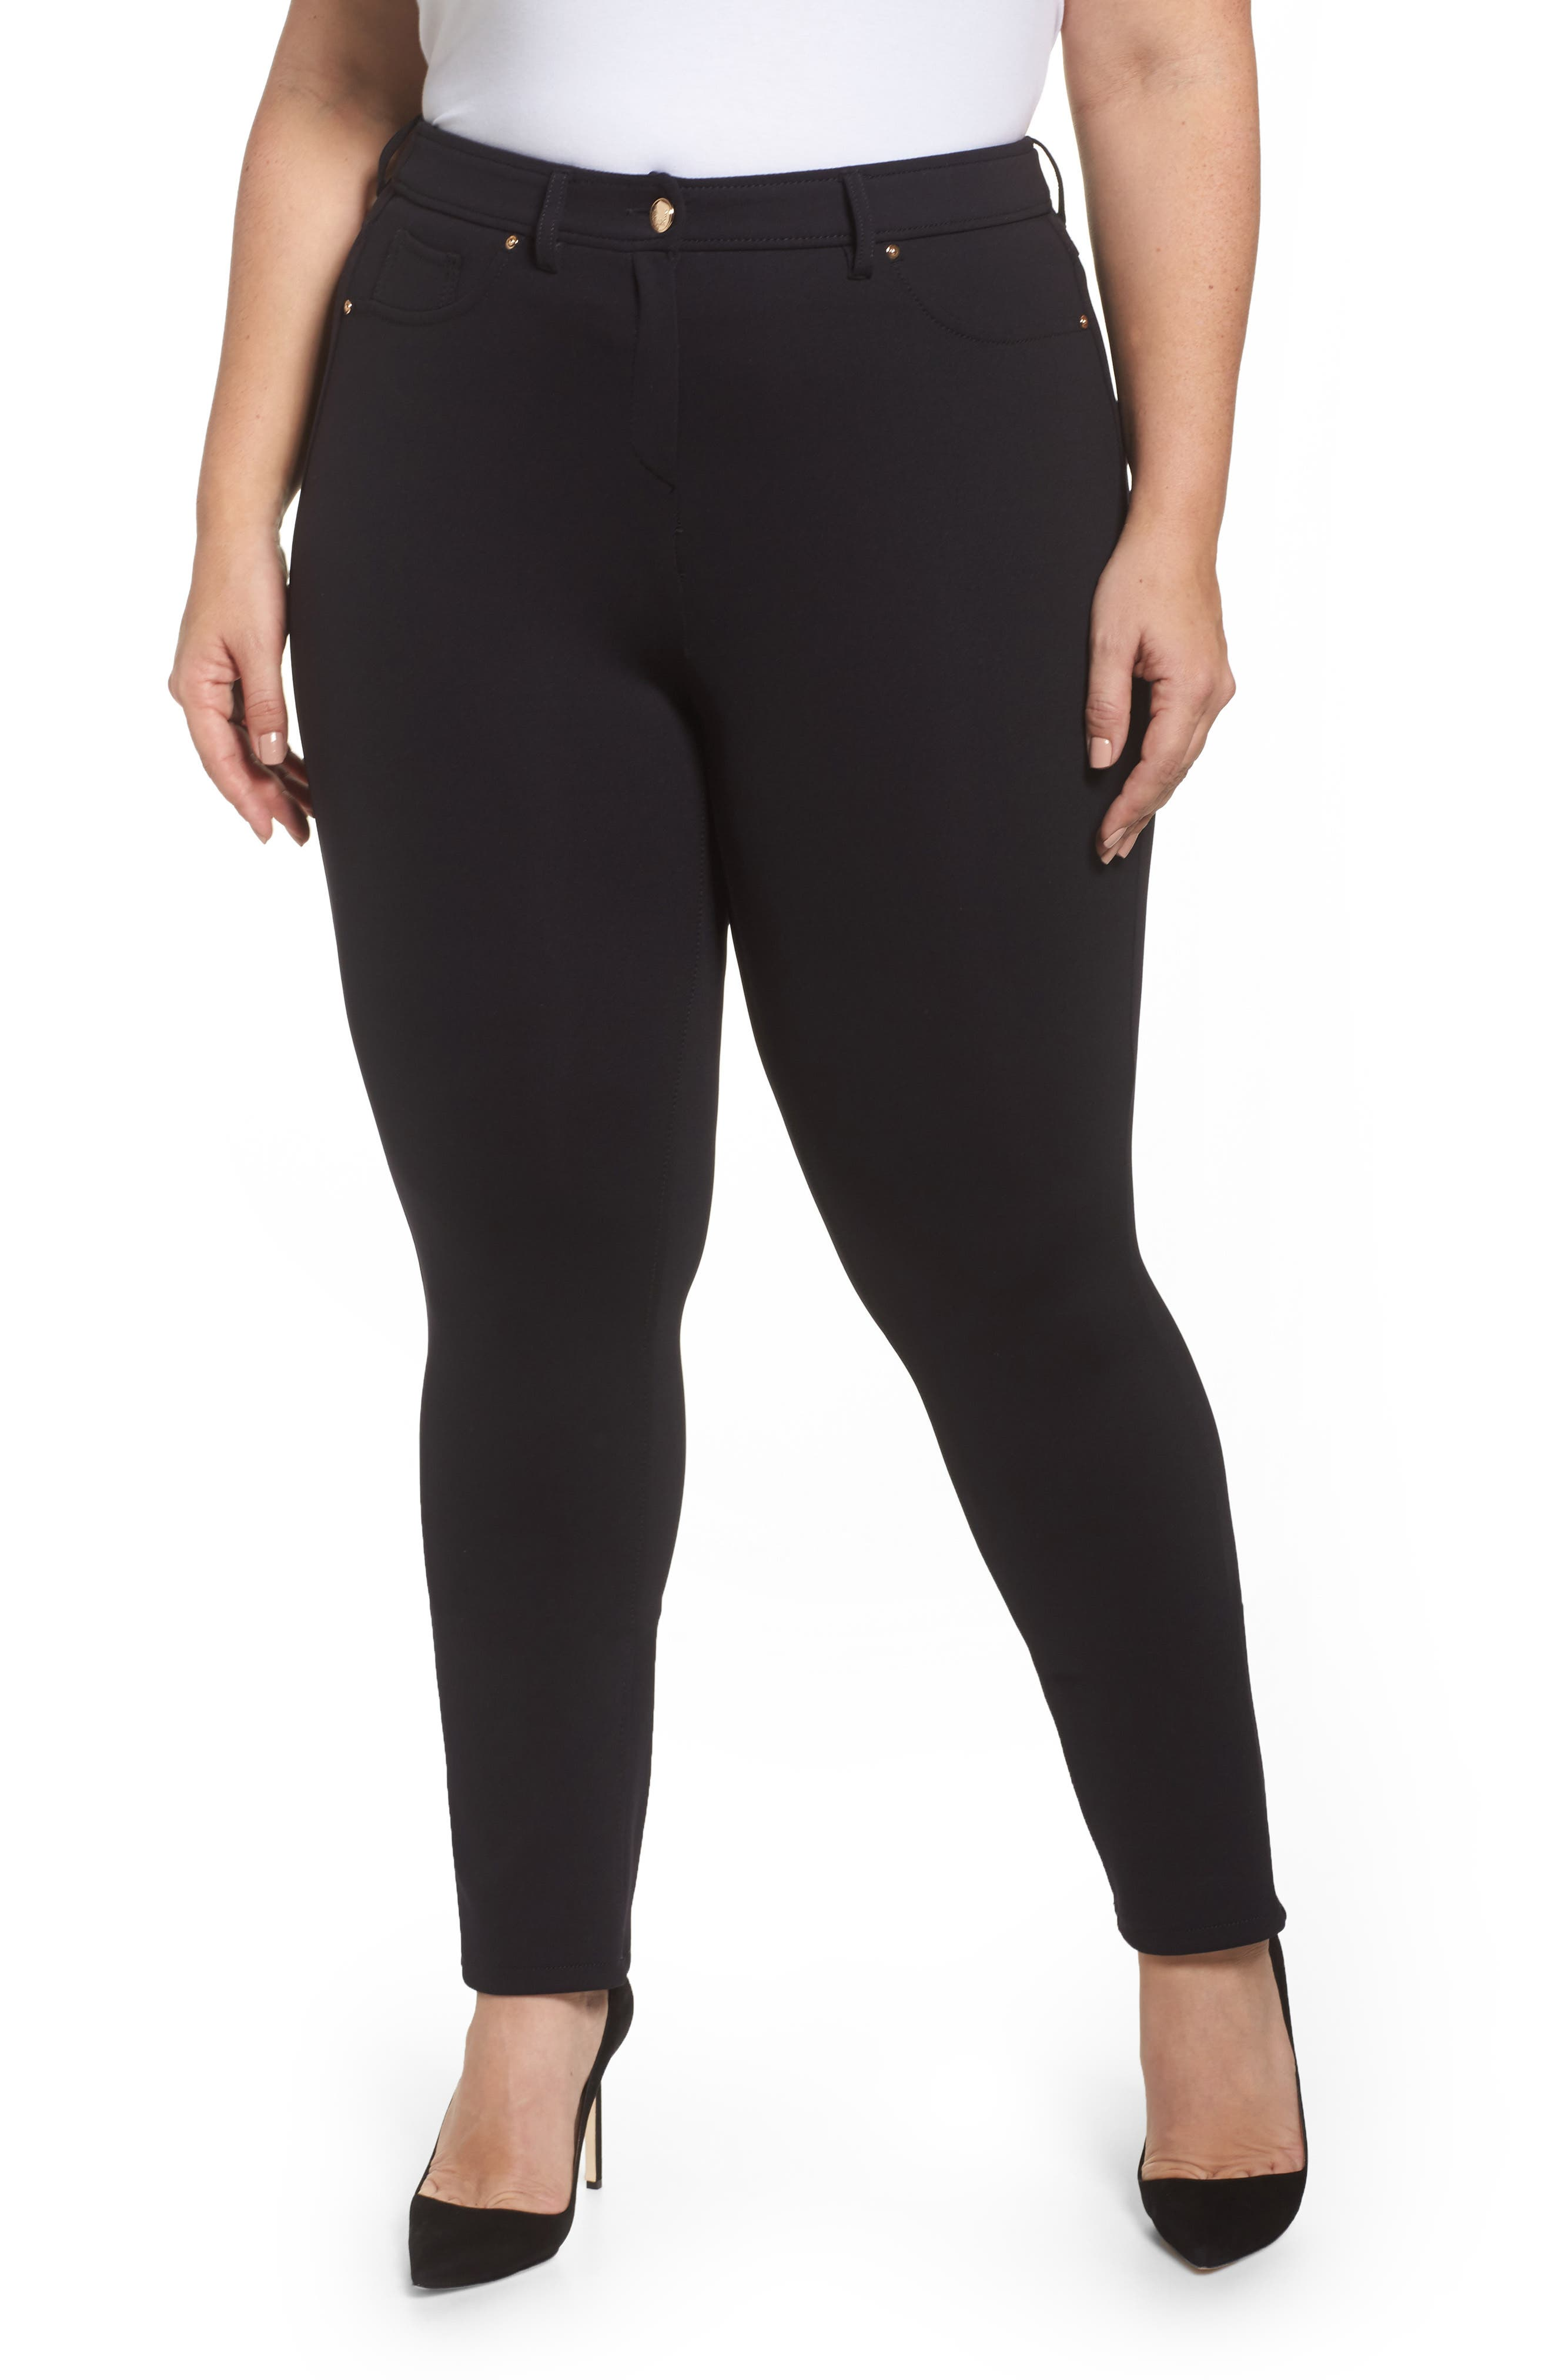 Ashley Graham x Marina Rinaldi Odalisca Jersey Pants (Regular & Plus Size)